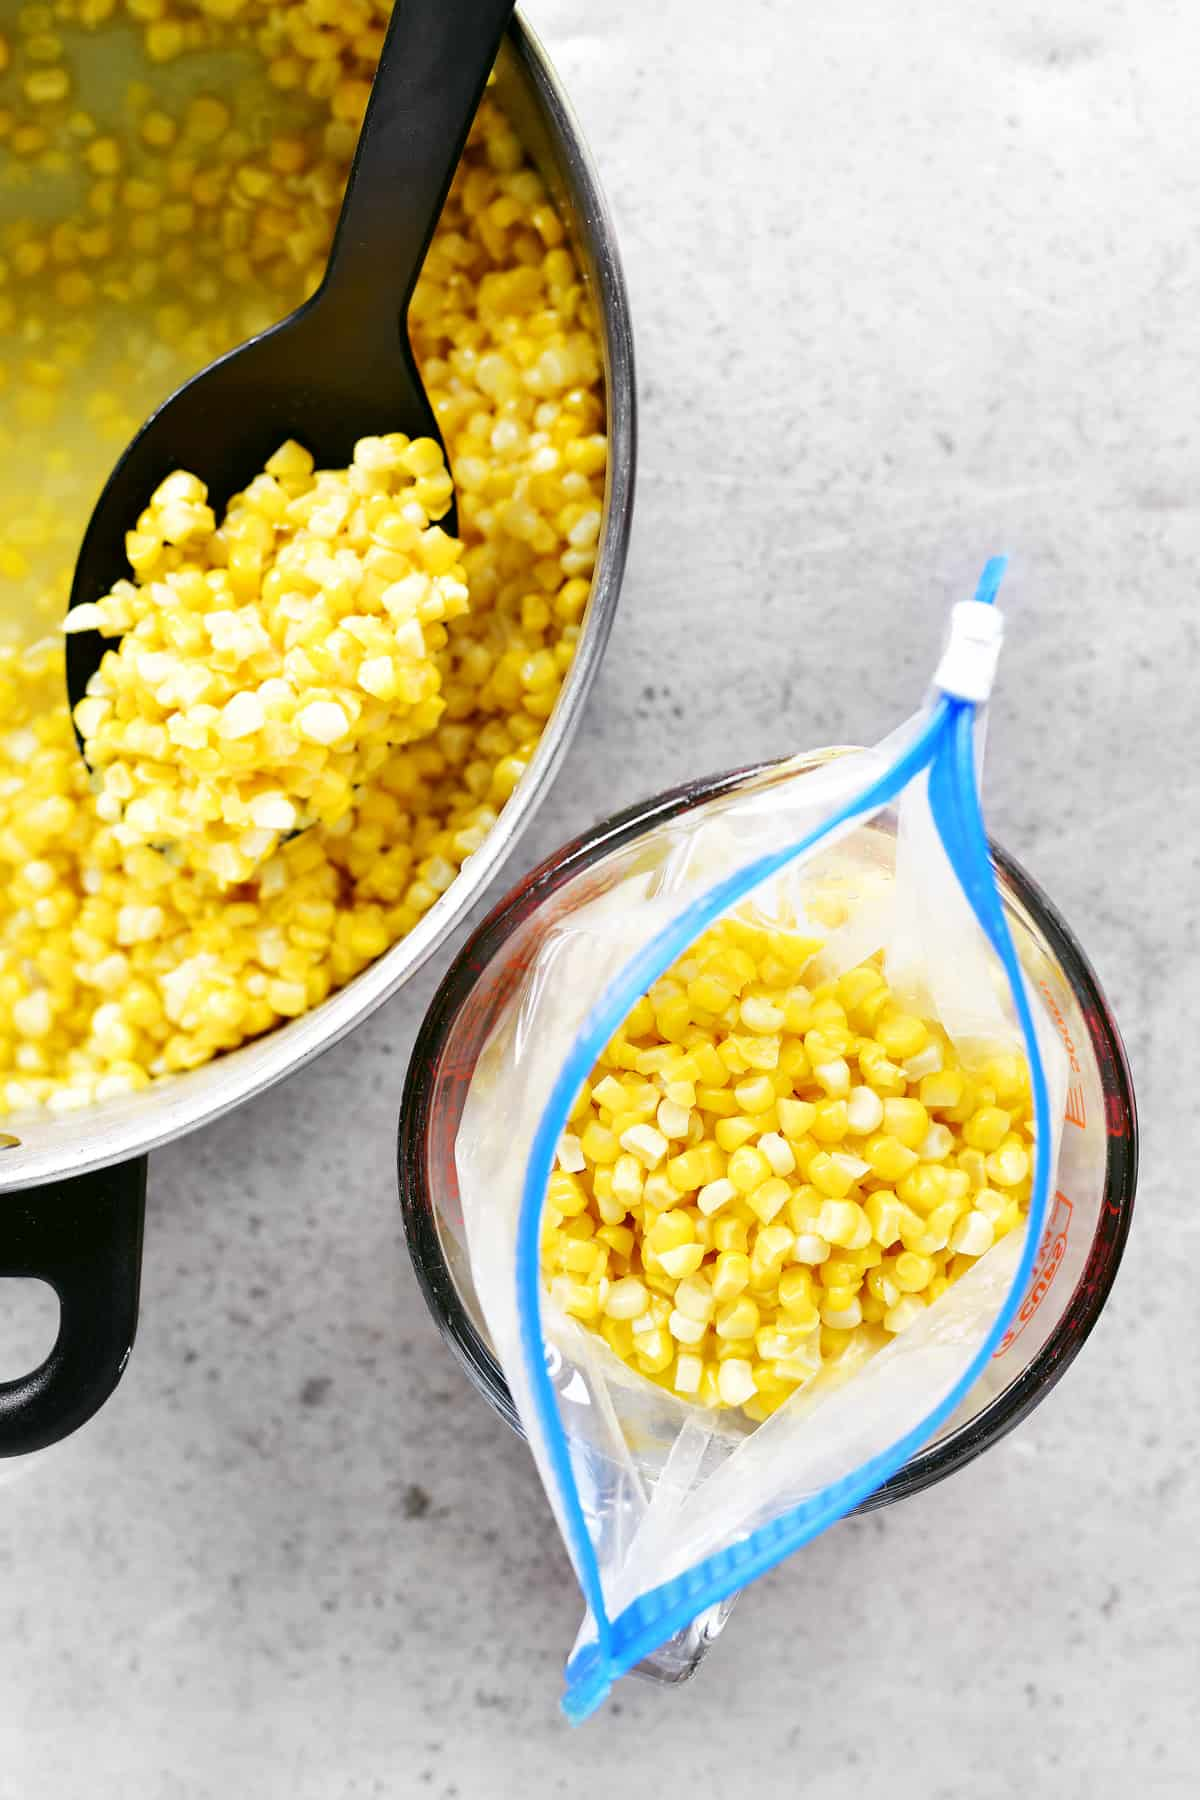 filling baggie with corn kernels